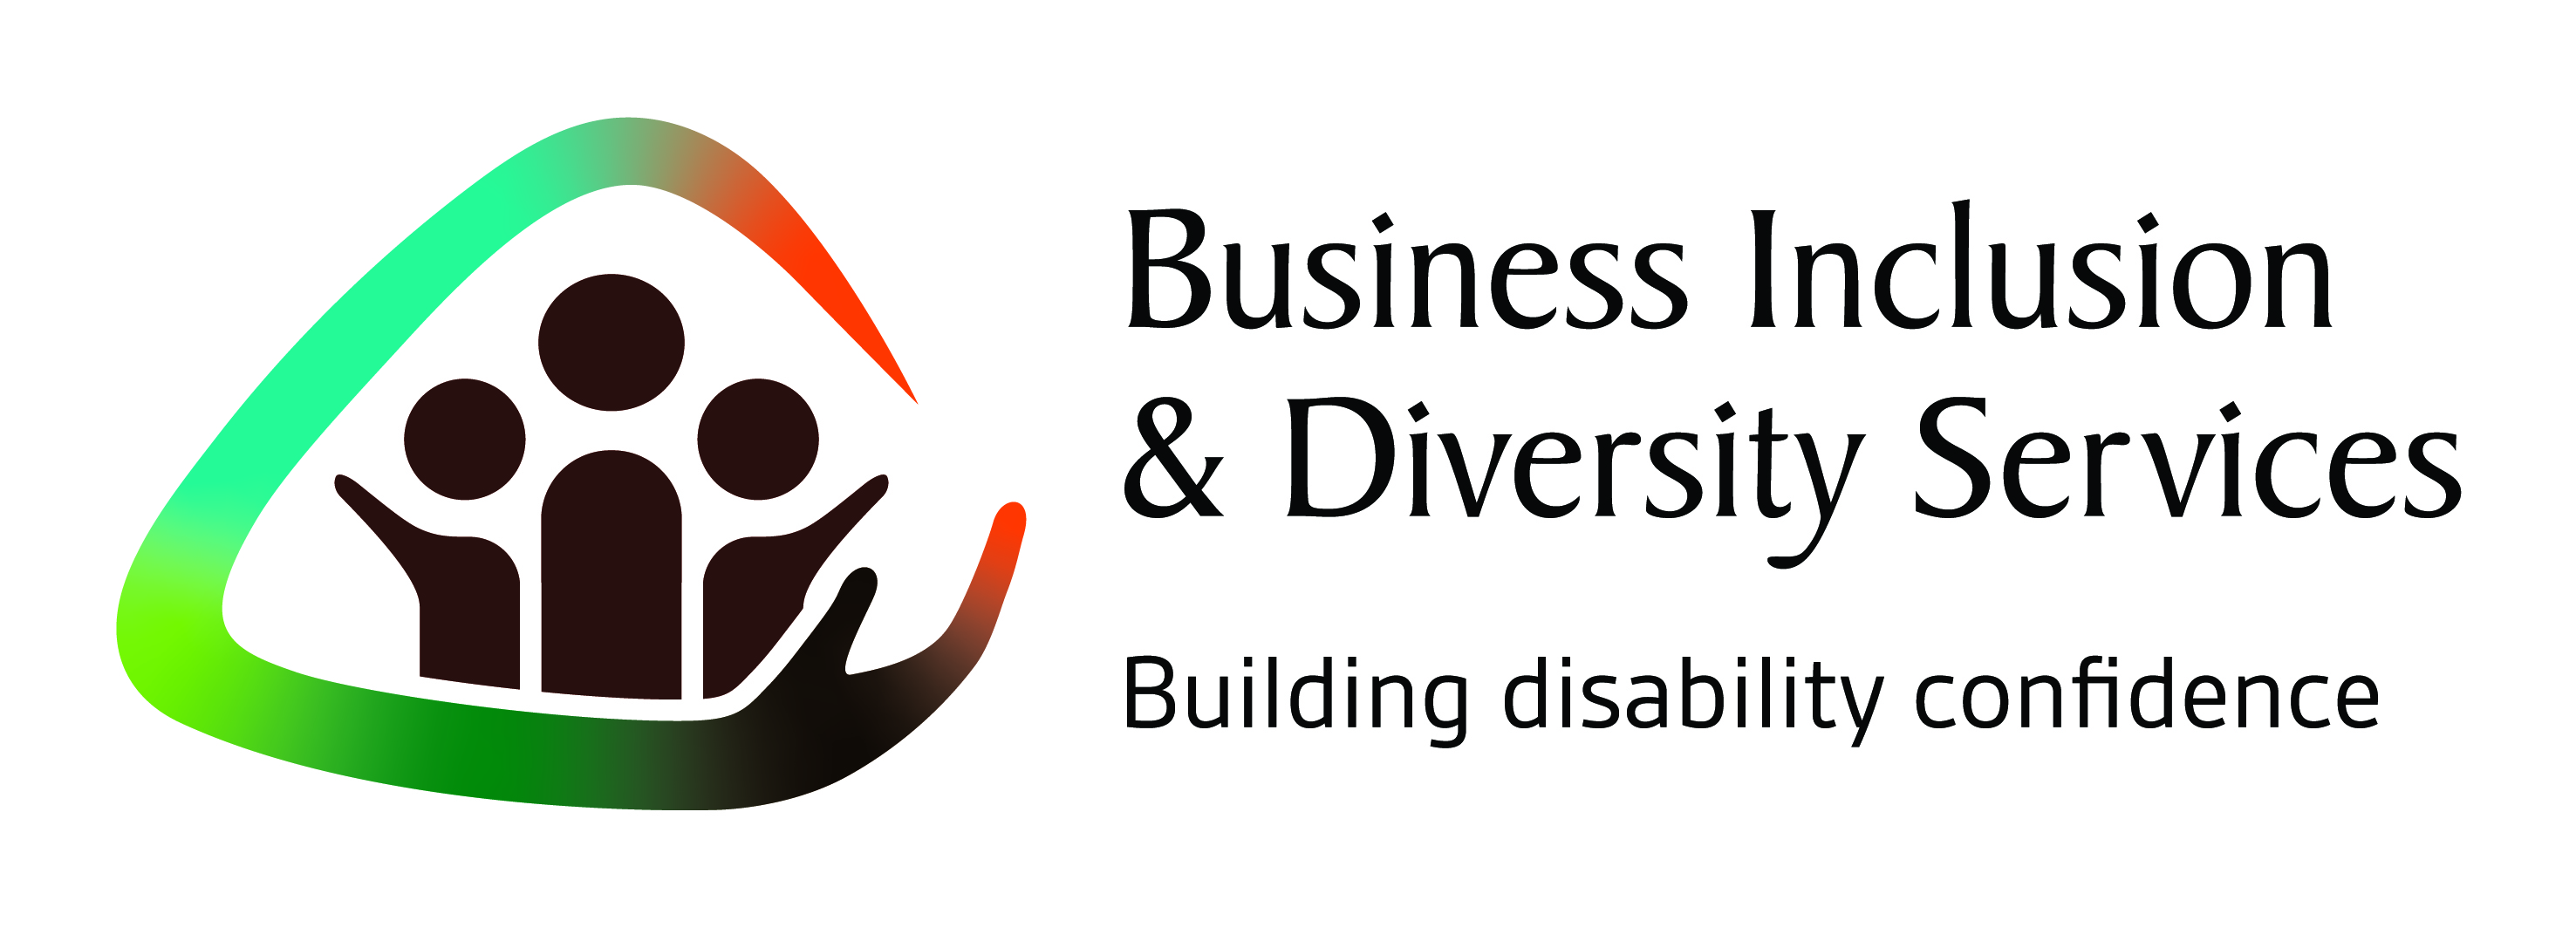 AFDO Business Inclusion & Diversity Services logo